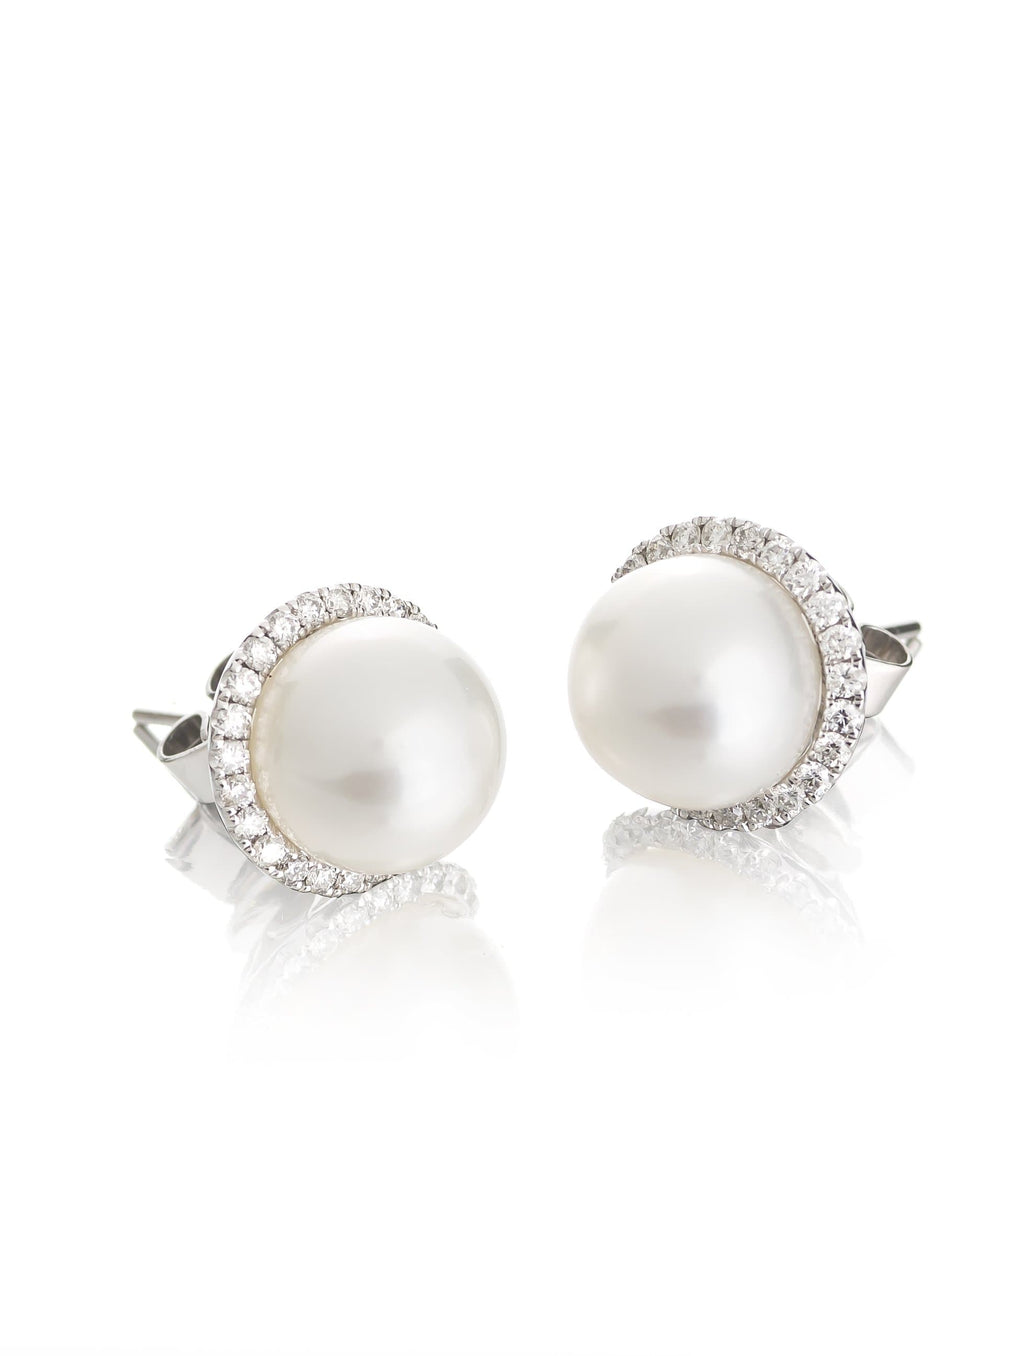 Australian South Sea Pearl & Diamond Halo Earrings